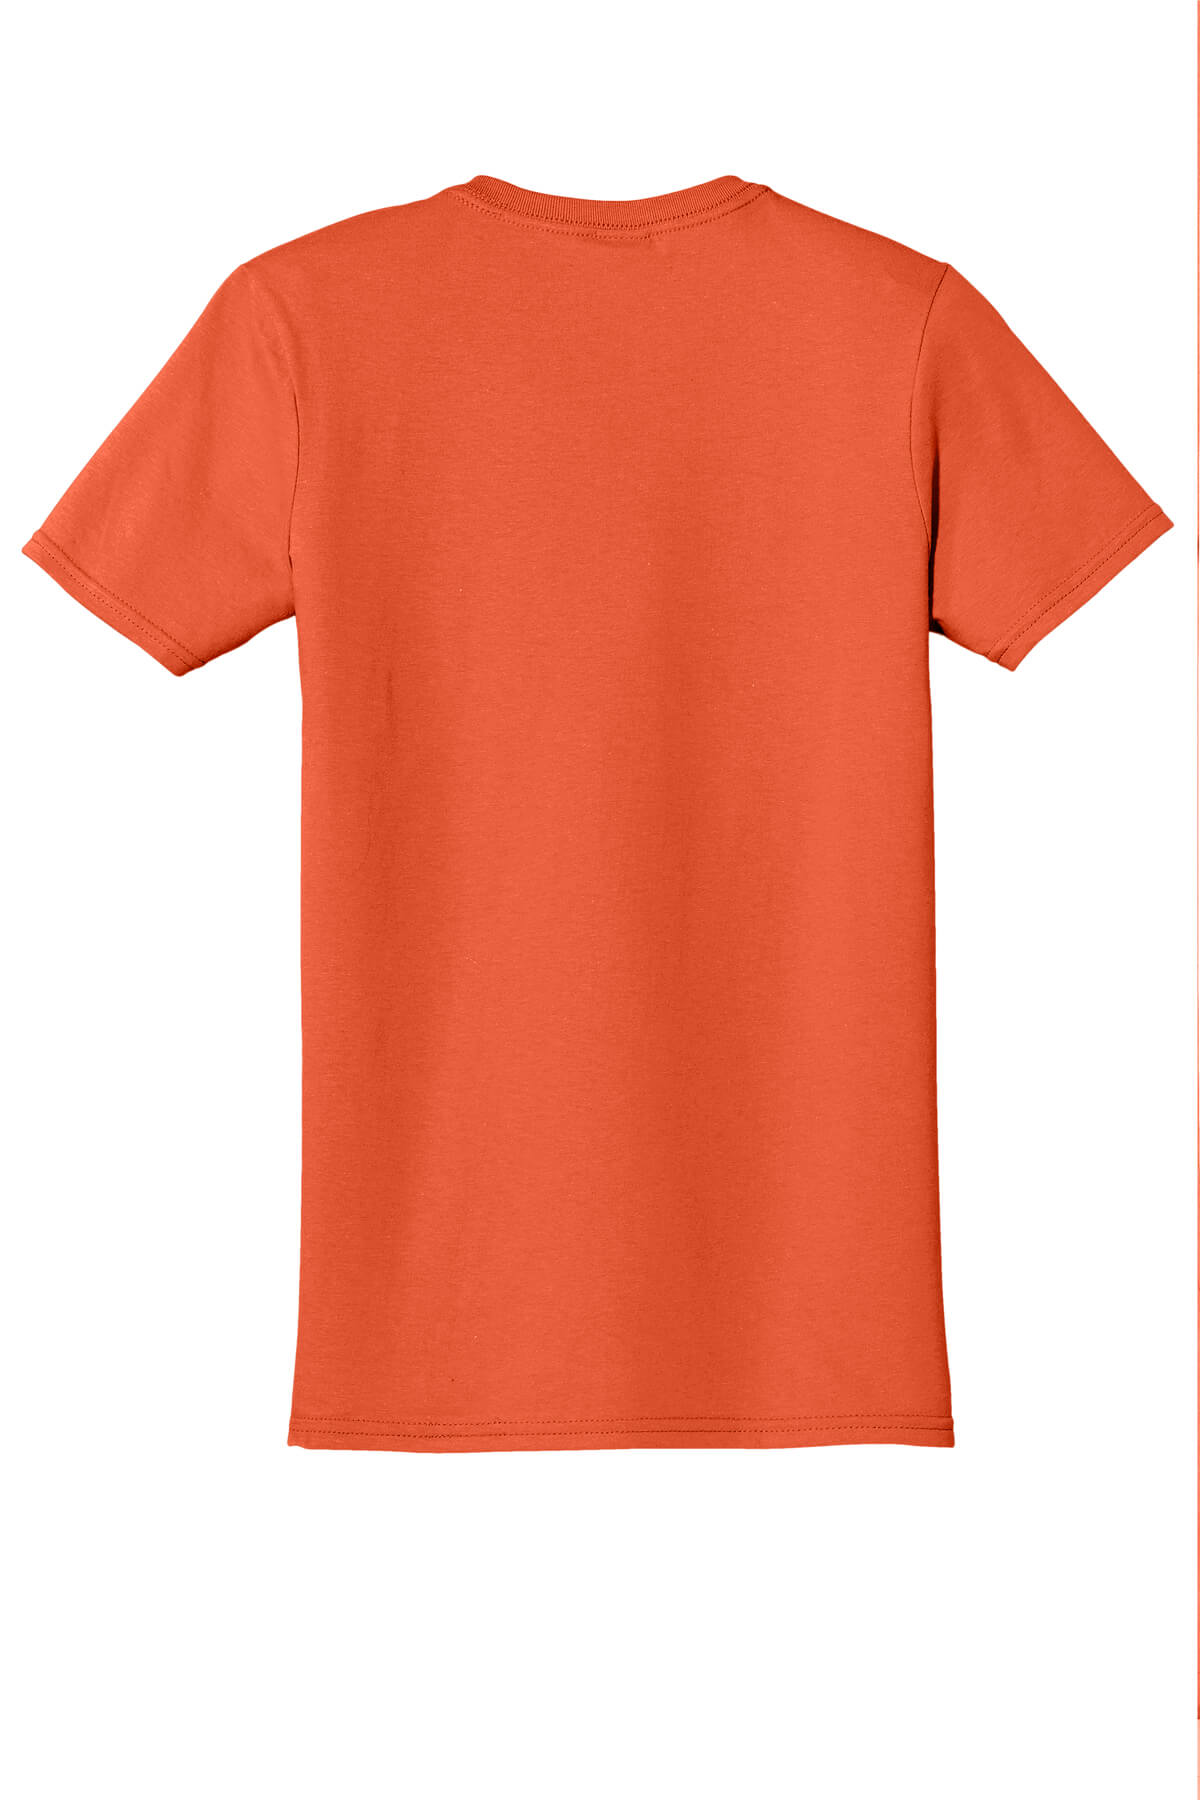 Orange T-Shirt Back